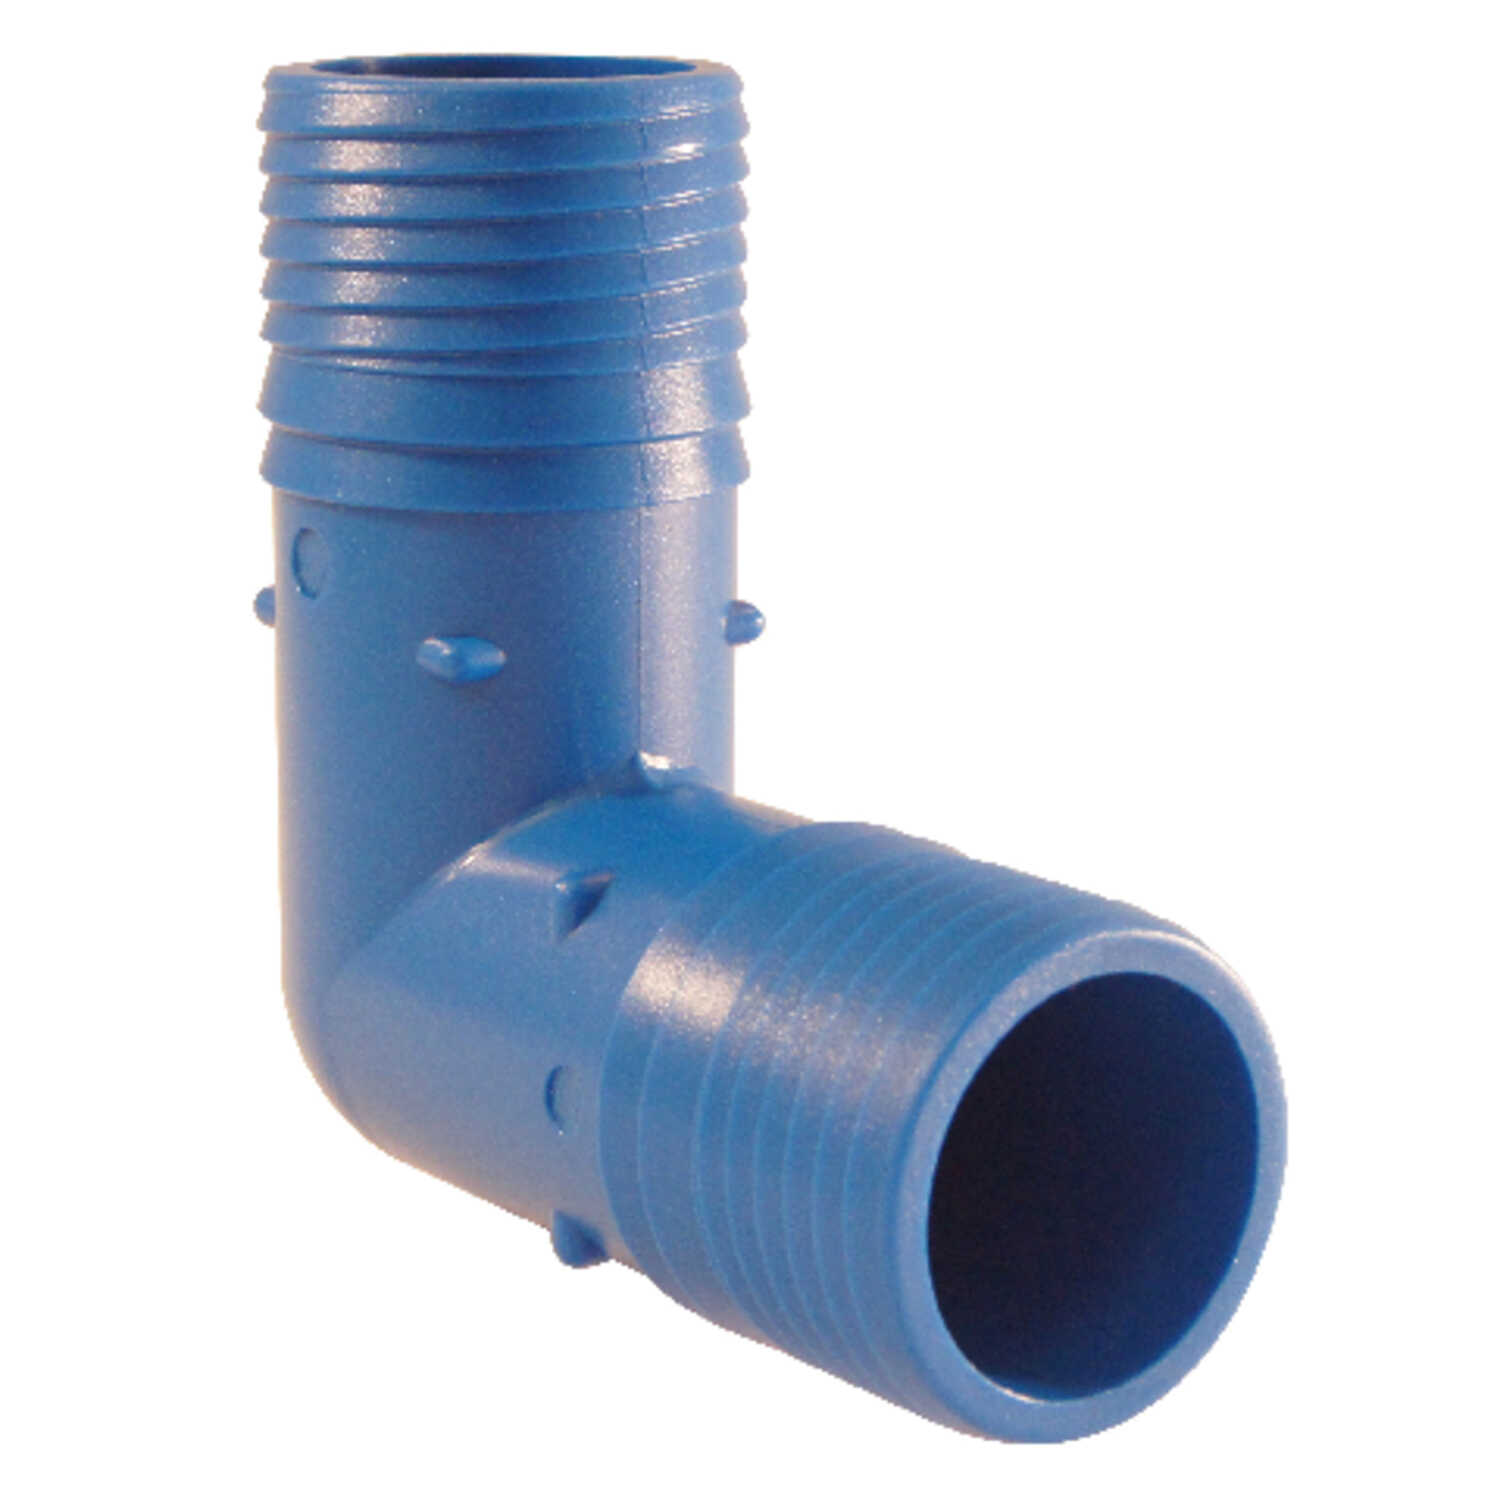 Blue Twisters  1-1/4 in. Insert   x 1-1/4 in. Dia. Insert  Polypropylene  Elbow